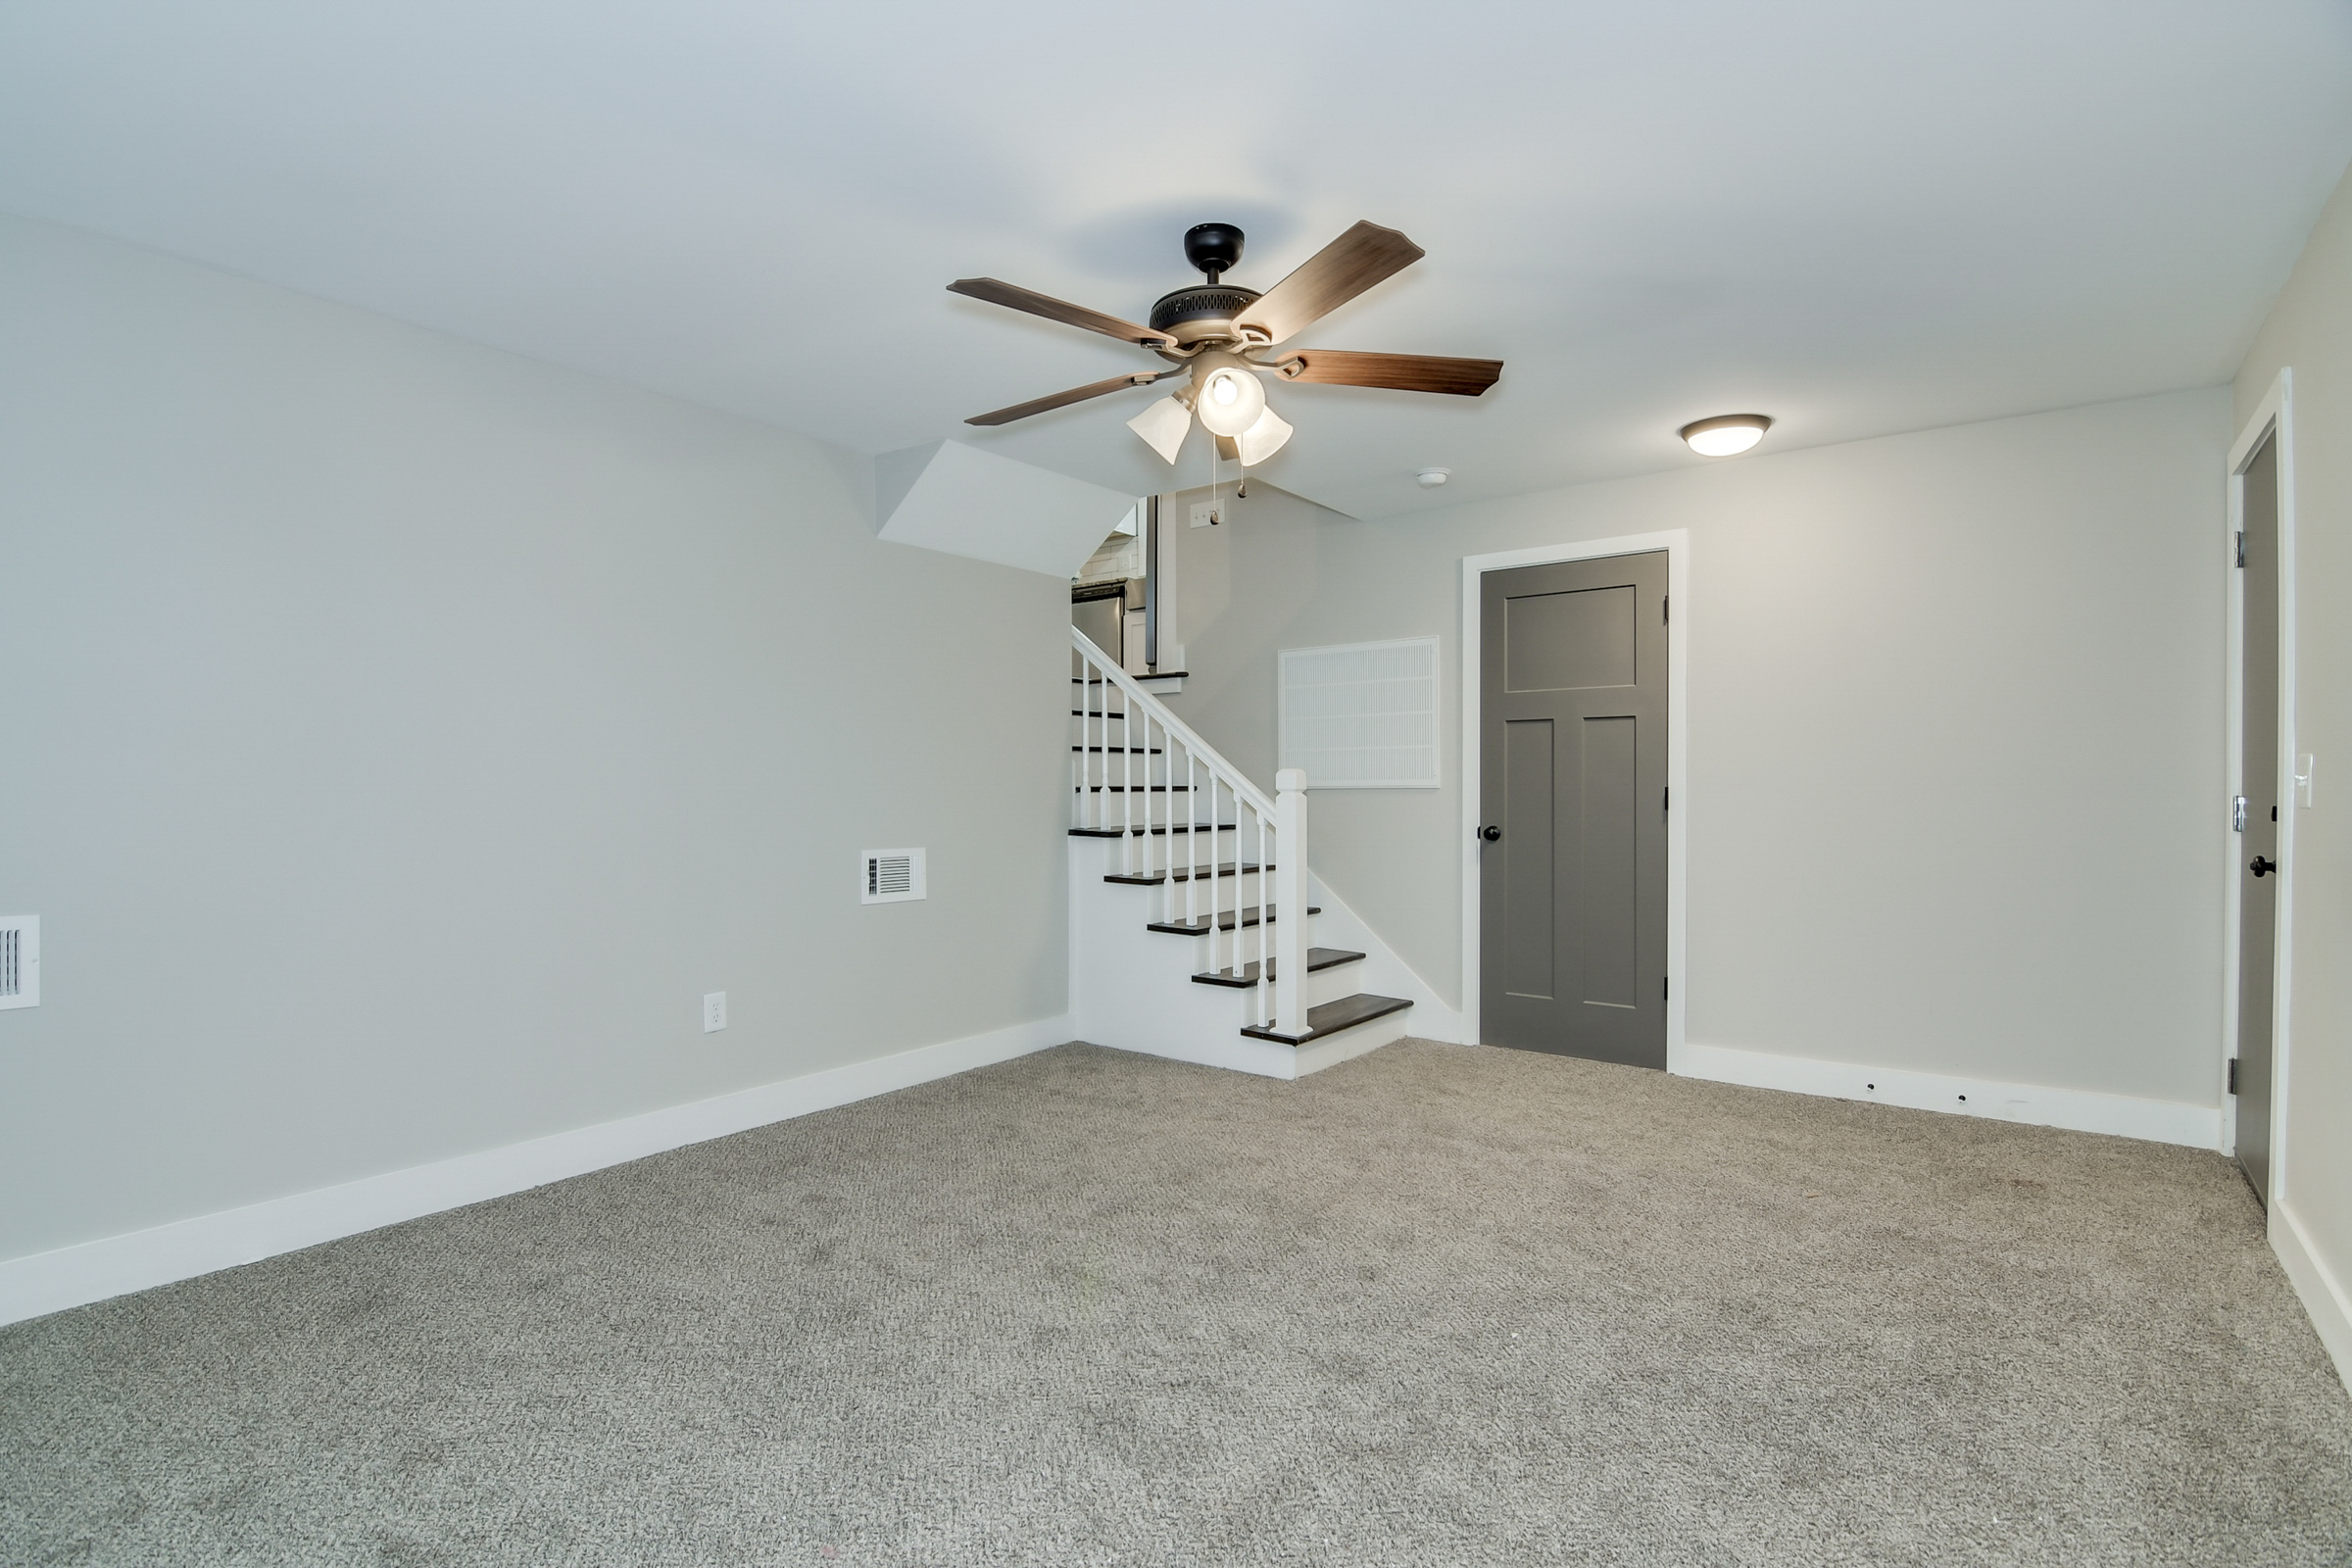 Upscale Ceiling Fan Upscale Remodel In The Heart Of West Augusta Jim Hadden Home Sales